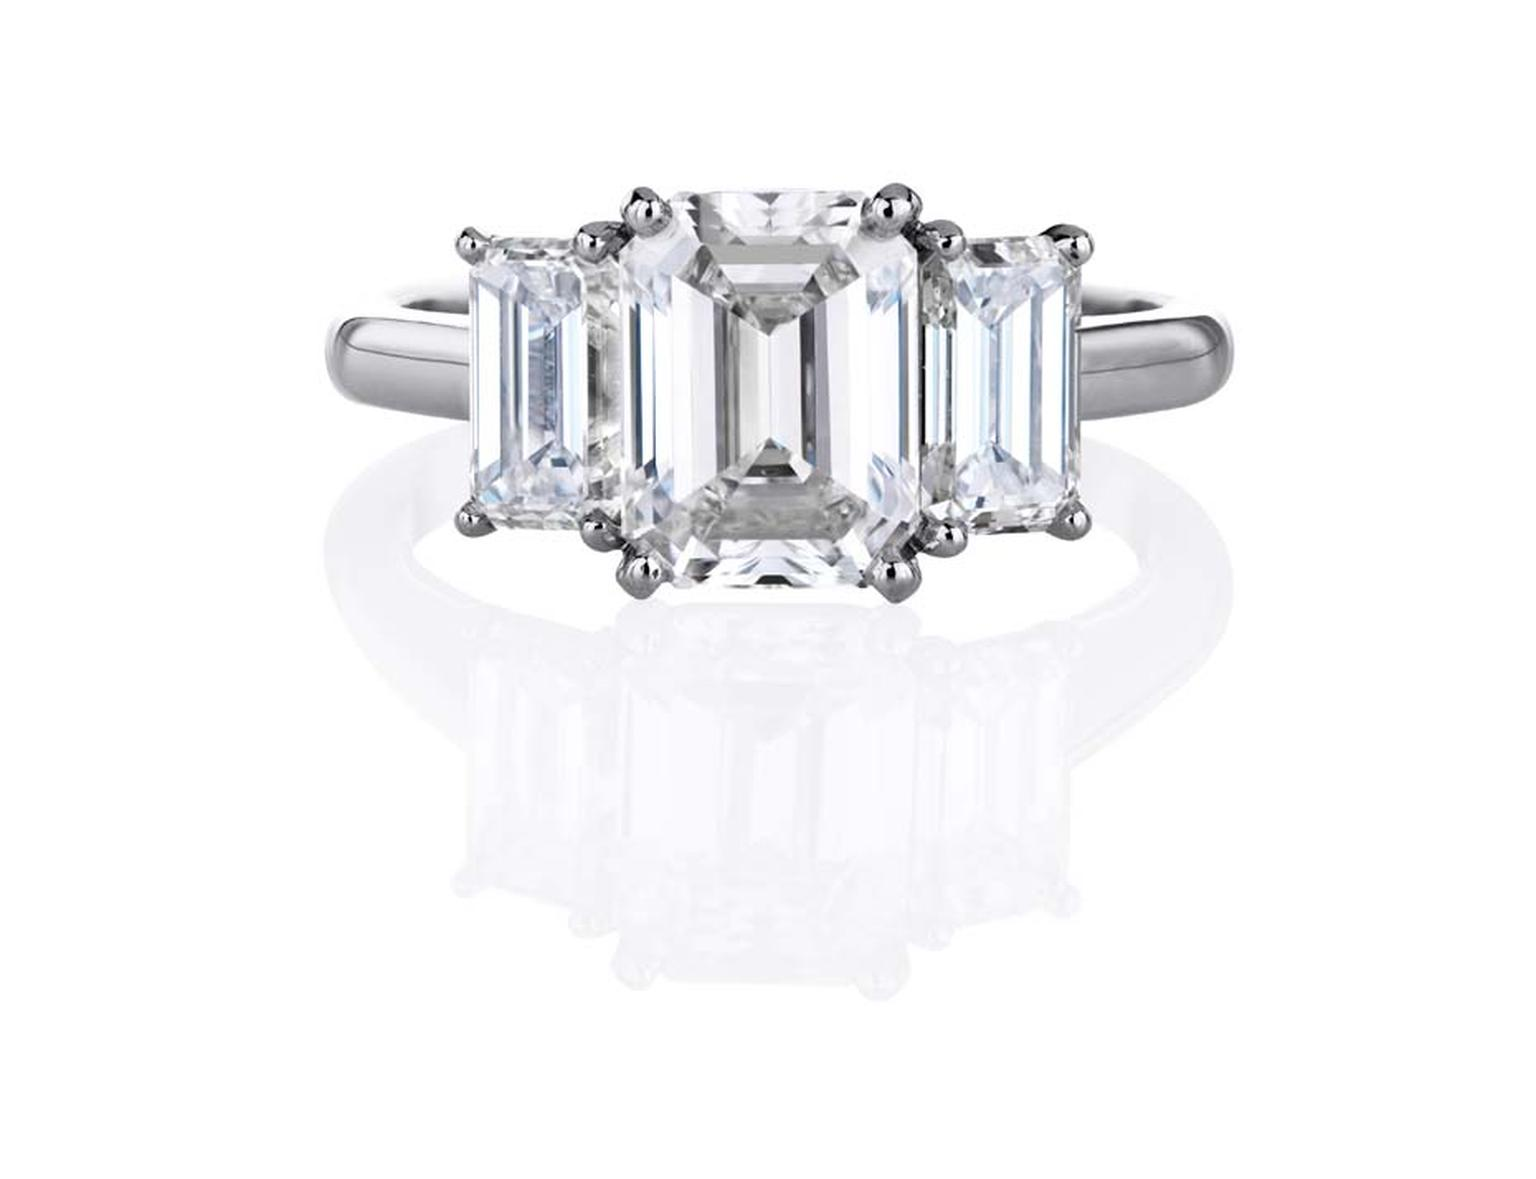 De Beers Classic Trio emerald-cut diamond engagement ring